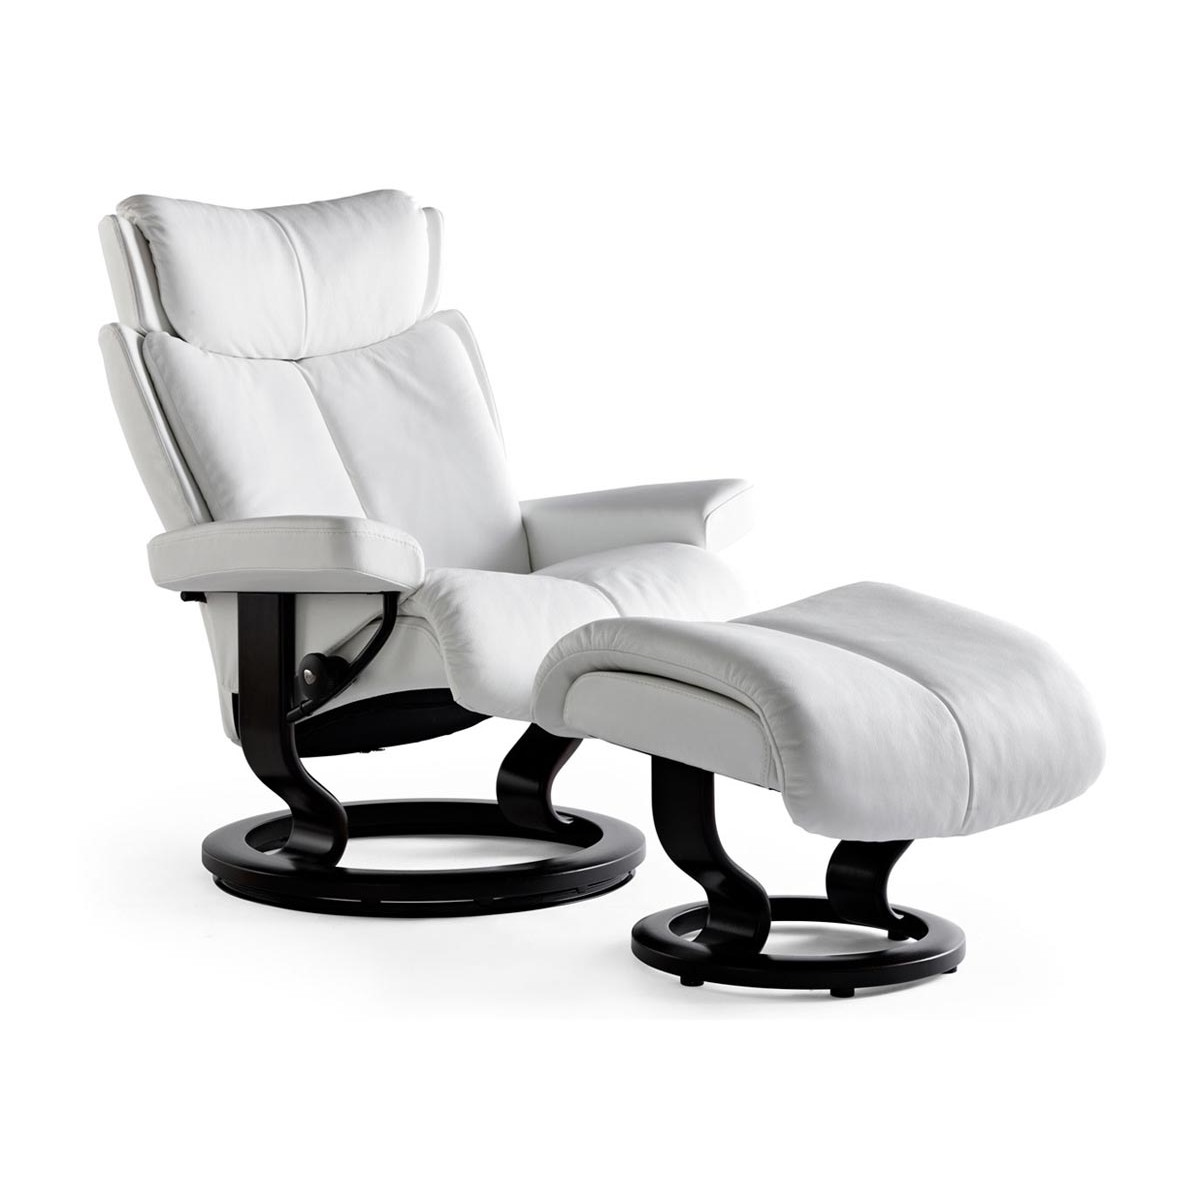 Stressless Magic Small Recliner Ottoman From 3 295 00 By